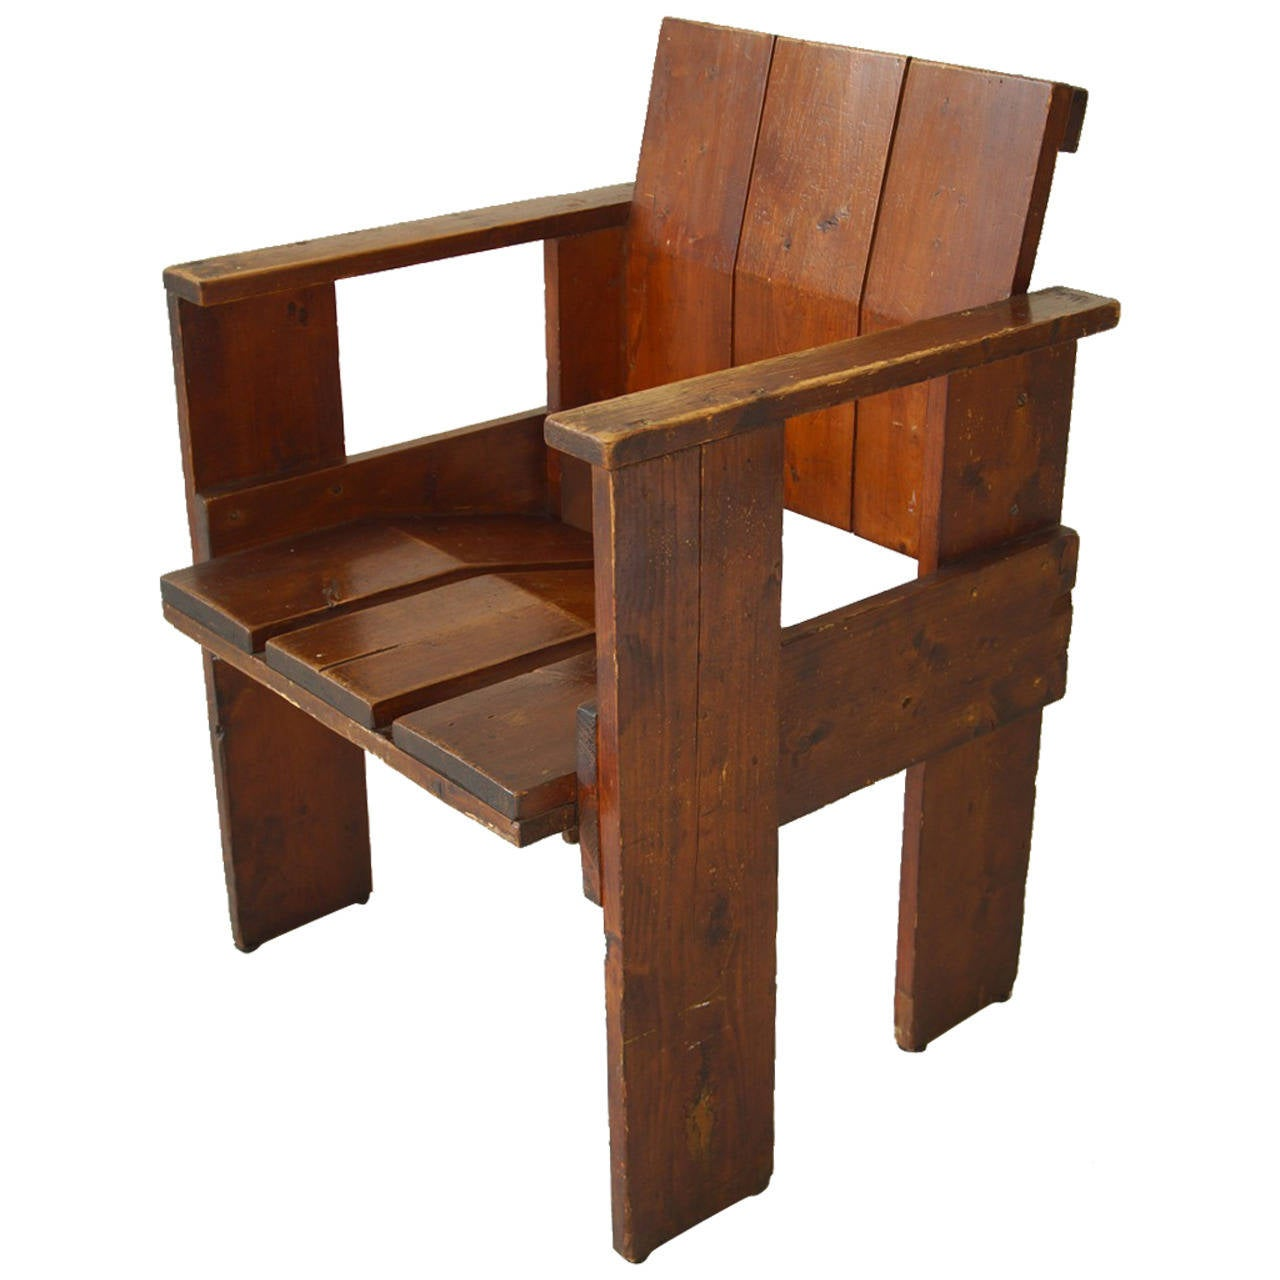 Gerrit rietveld chair for sale - Albatros Crate Chair By Gerrit Rietveld 1